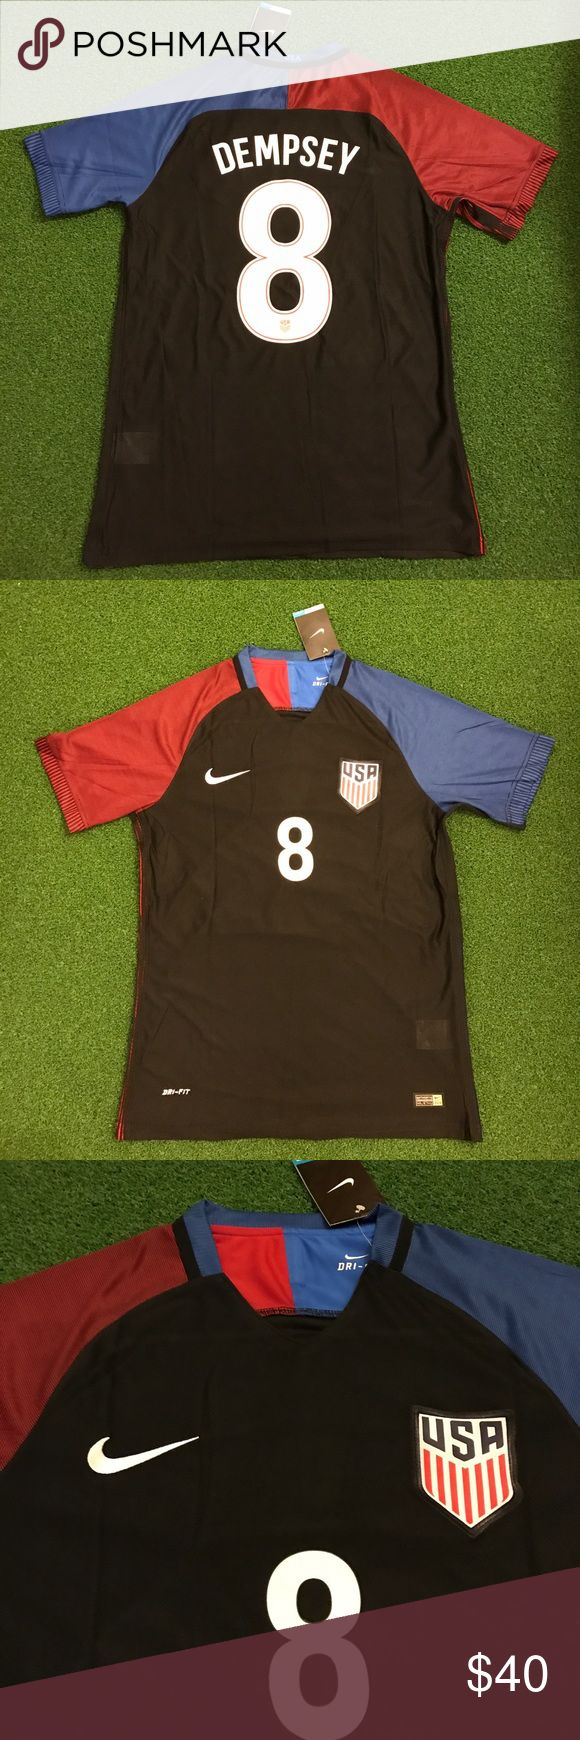 USA Soccer Jersey DEMPSEY #8 New with tags! Clint DEMPSEY #8 USA - United States of America men's national Short Sleeve Soccer Jersey! Black with red and blue sleeves - 2016. World Cup - futbol - uniform - kit - top - shirt Shirts Tees - Short Sleeve